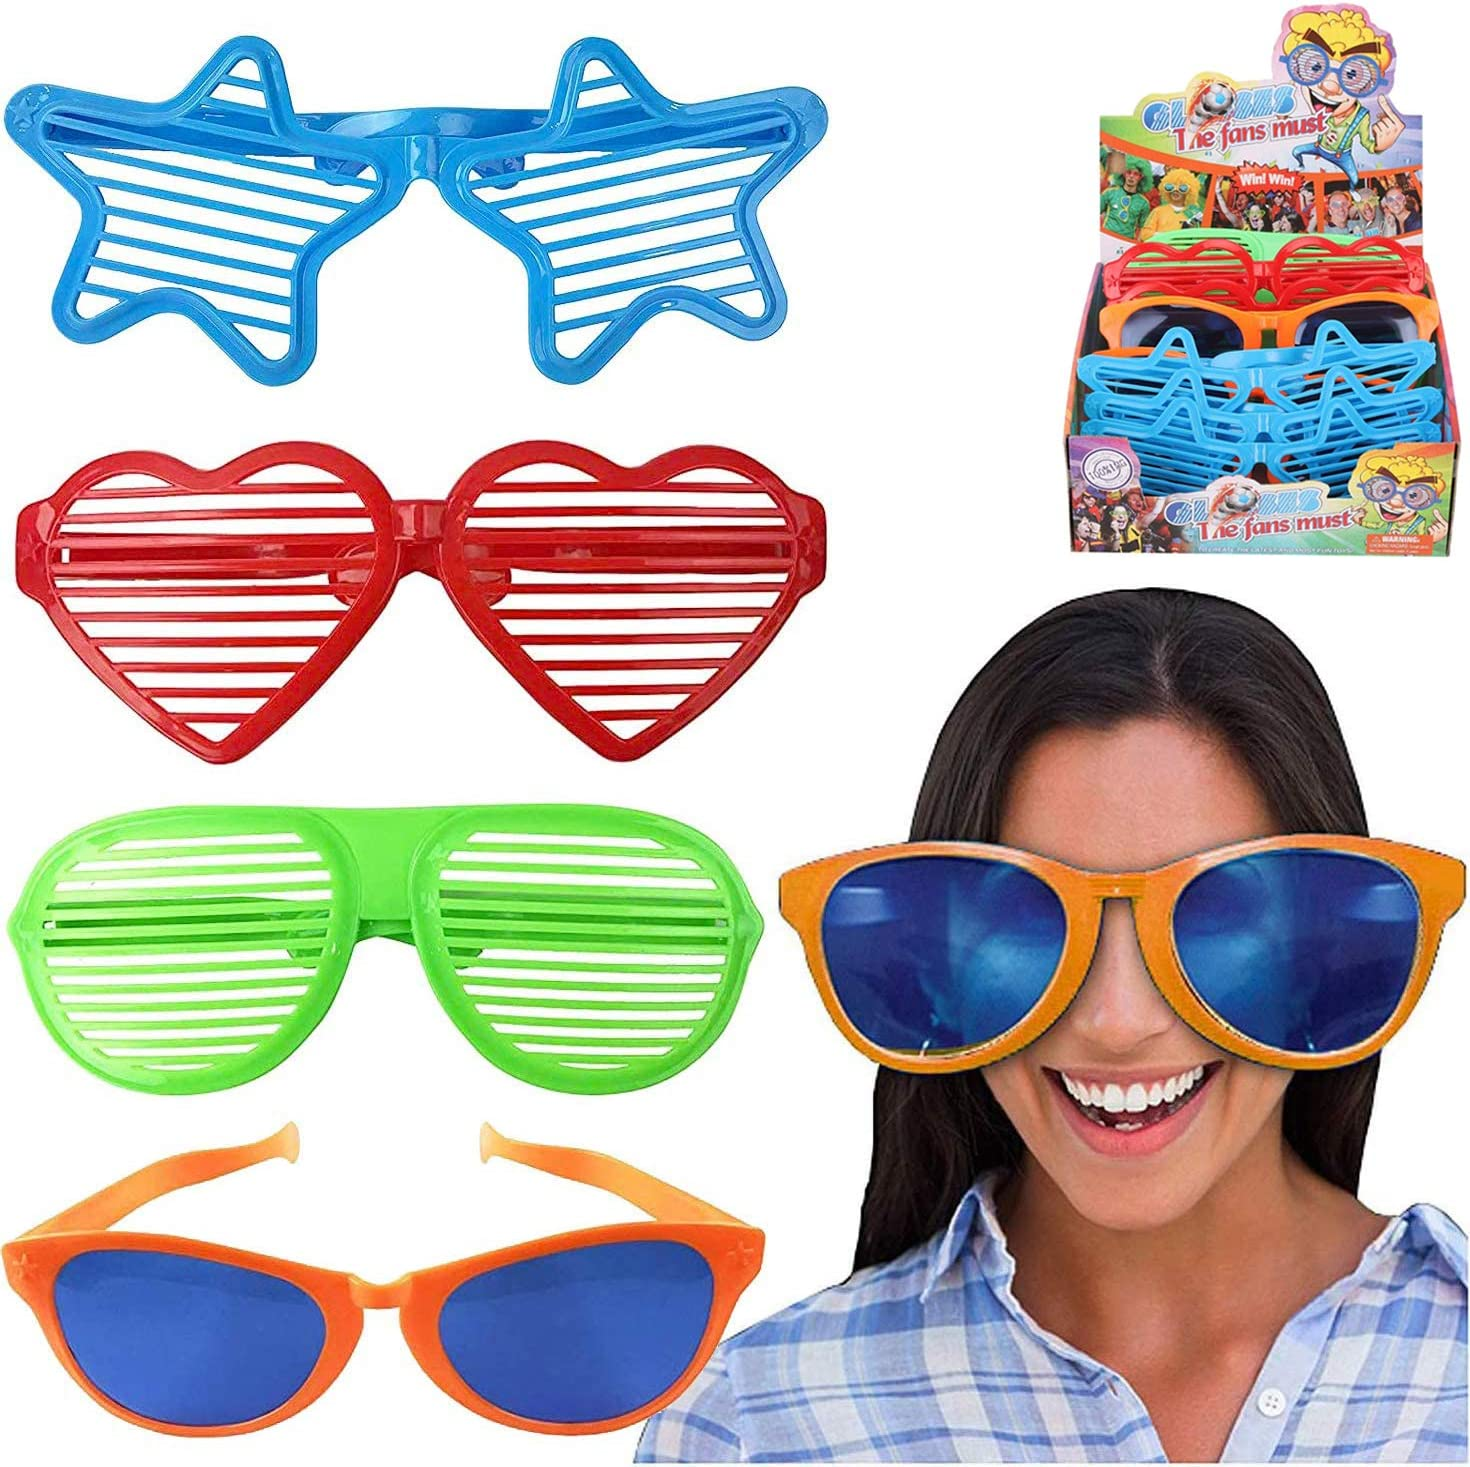 JUMBO STAR PARTY GLASSES BIRTHDAY PARTY SUPPLIES